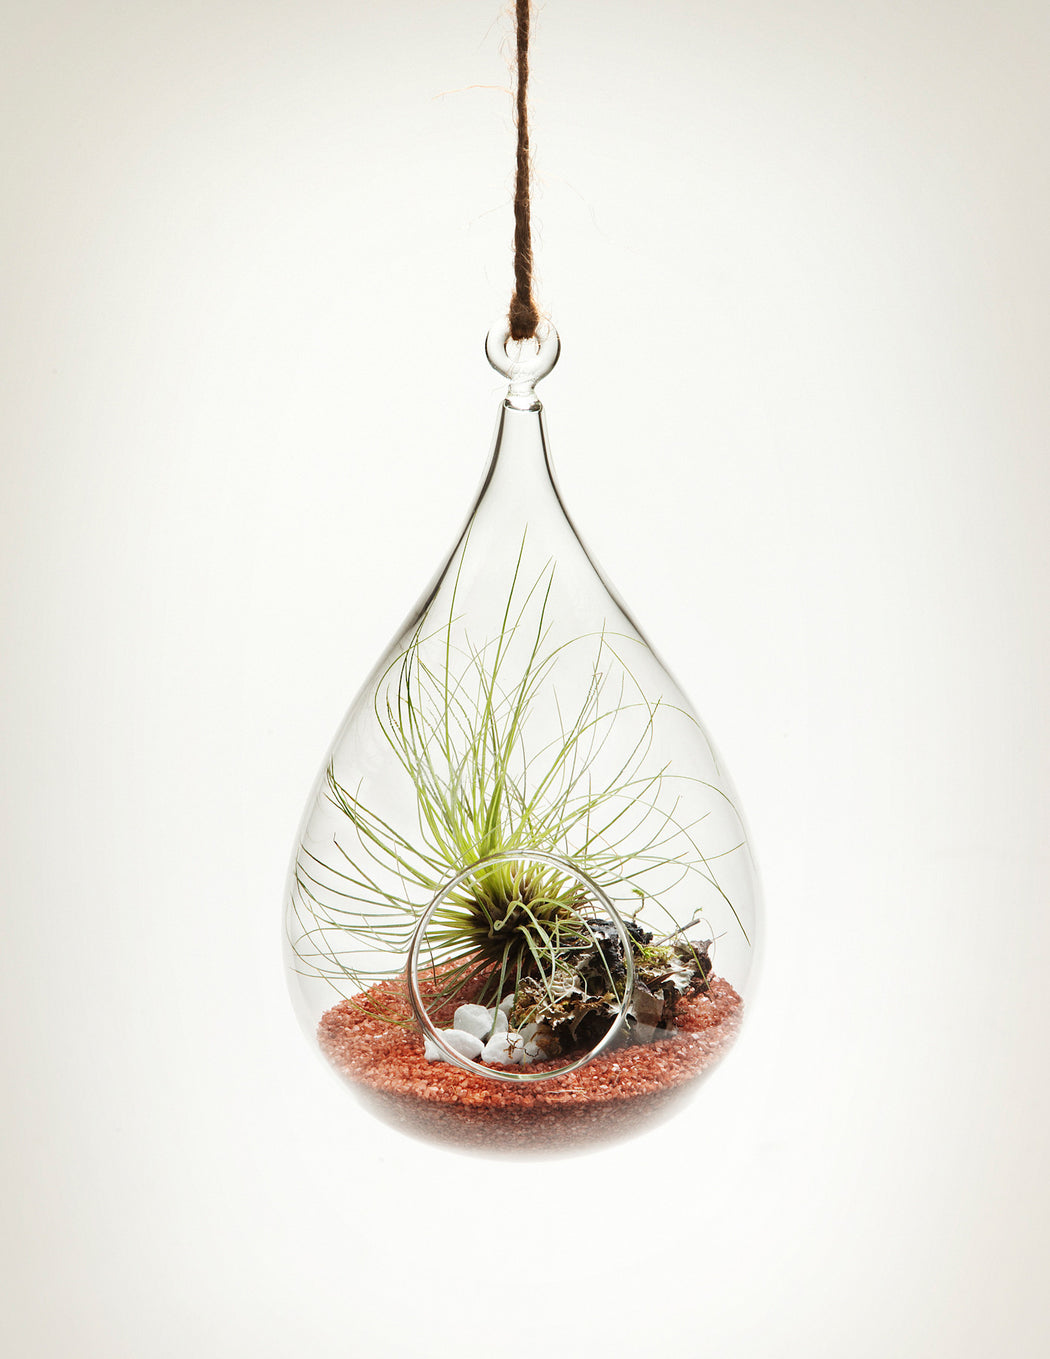 Hanging Aerium - Wren's nest with tillandsia air plant